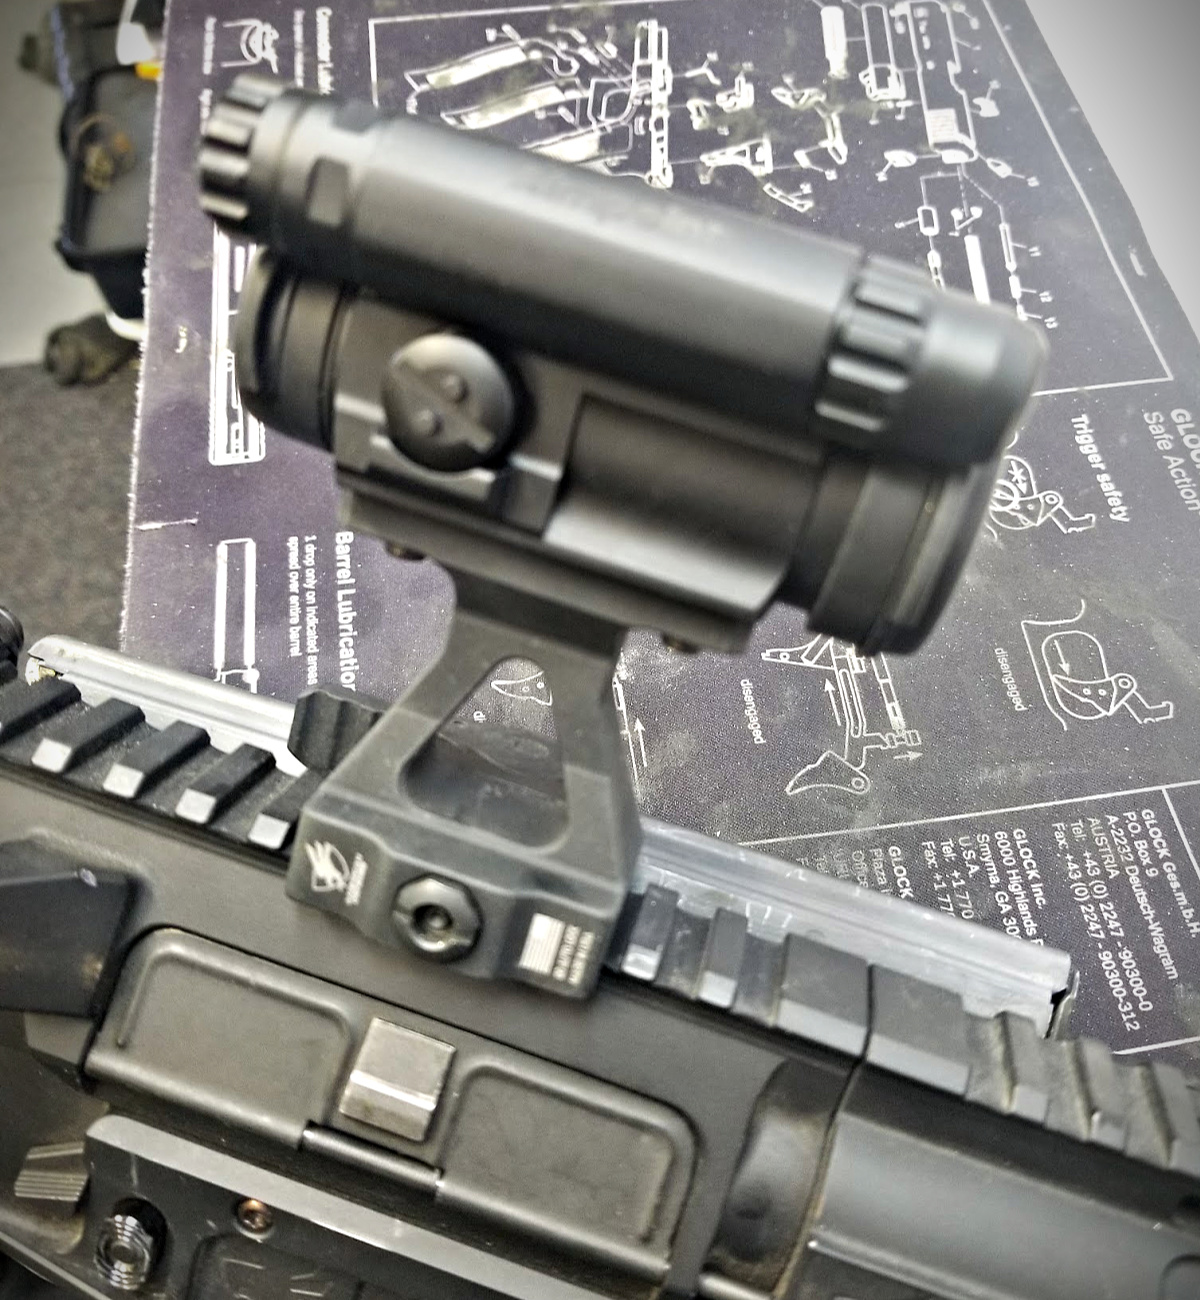 The Aimpoint CompM5 mounted to the ADM Mod 1 UIC rifle.